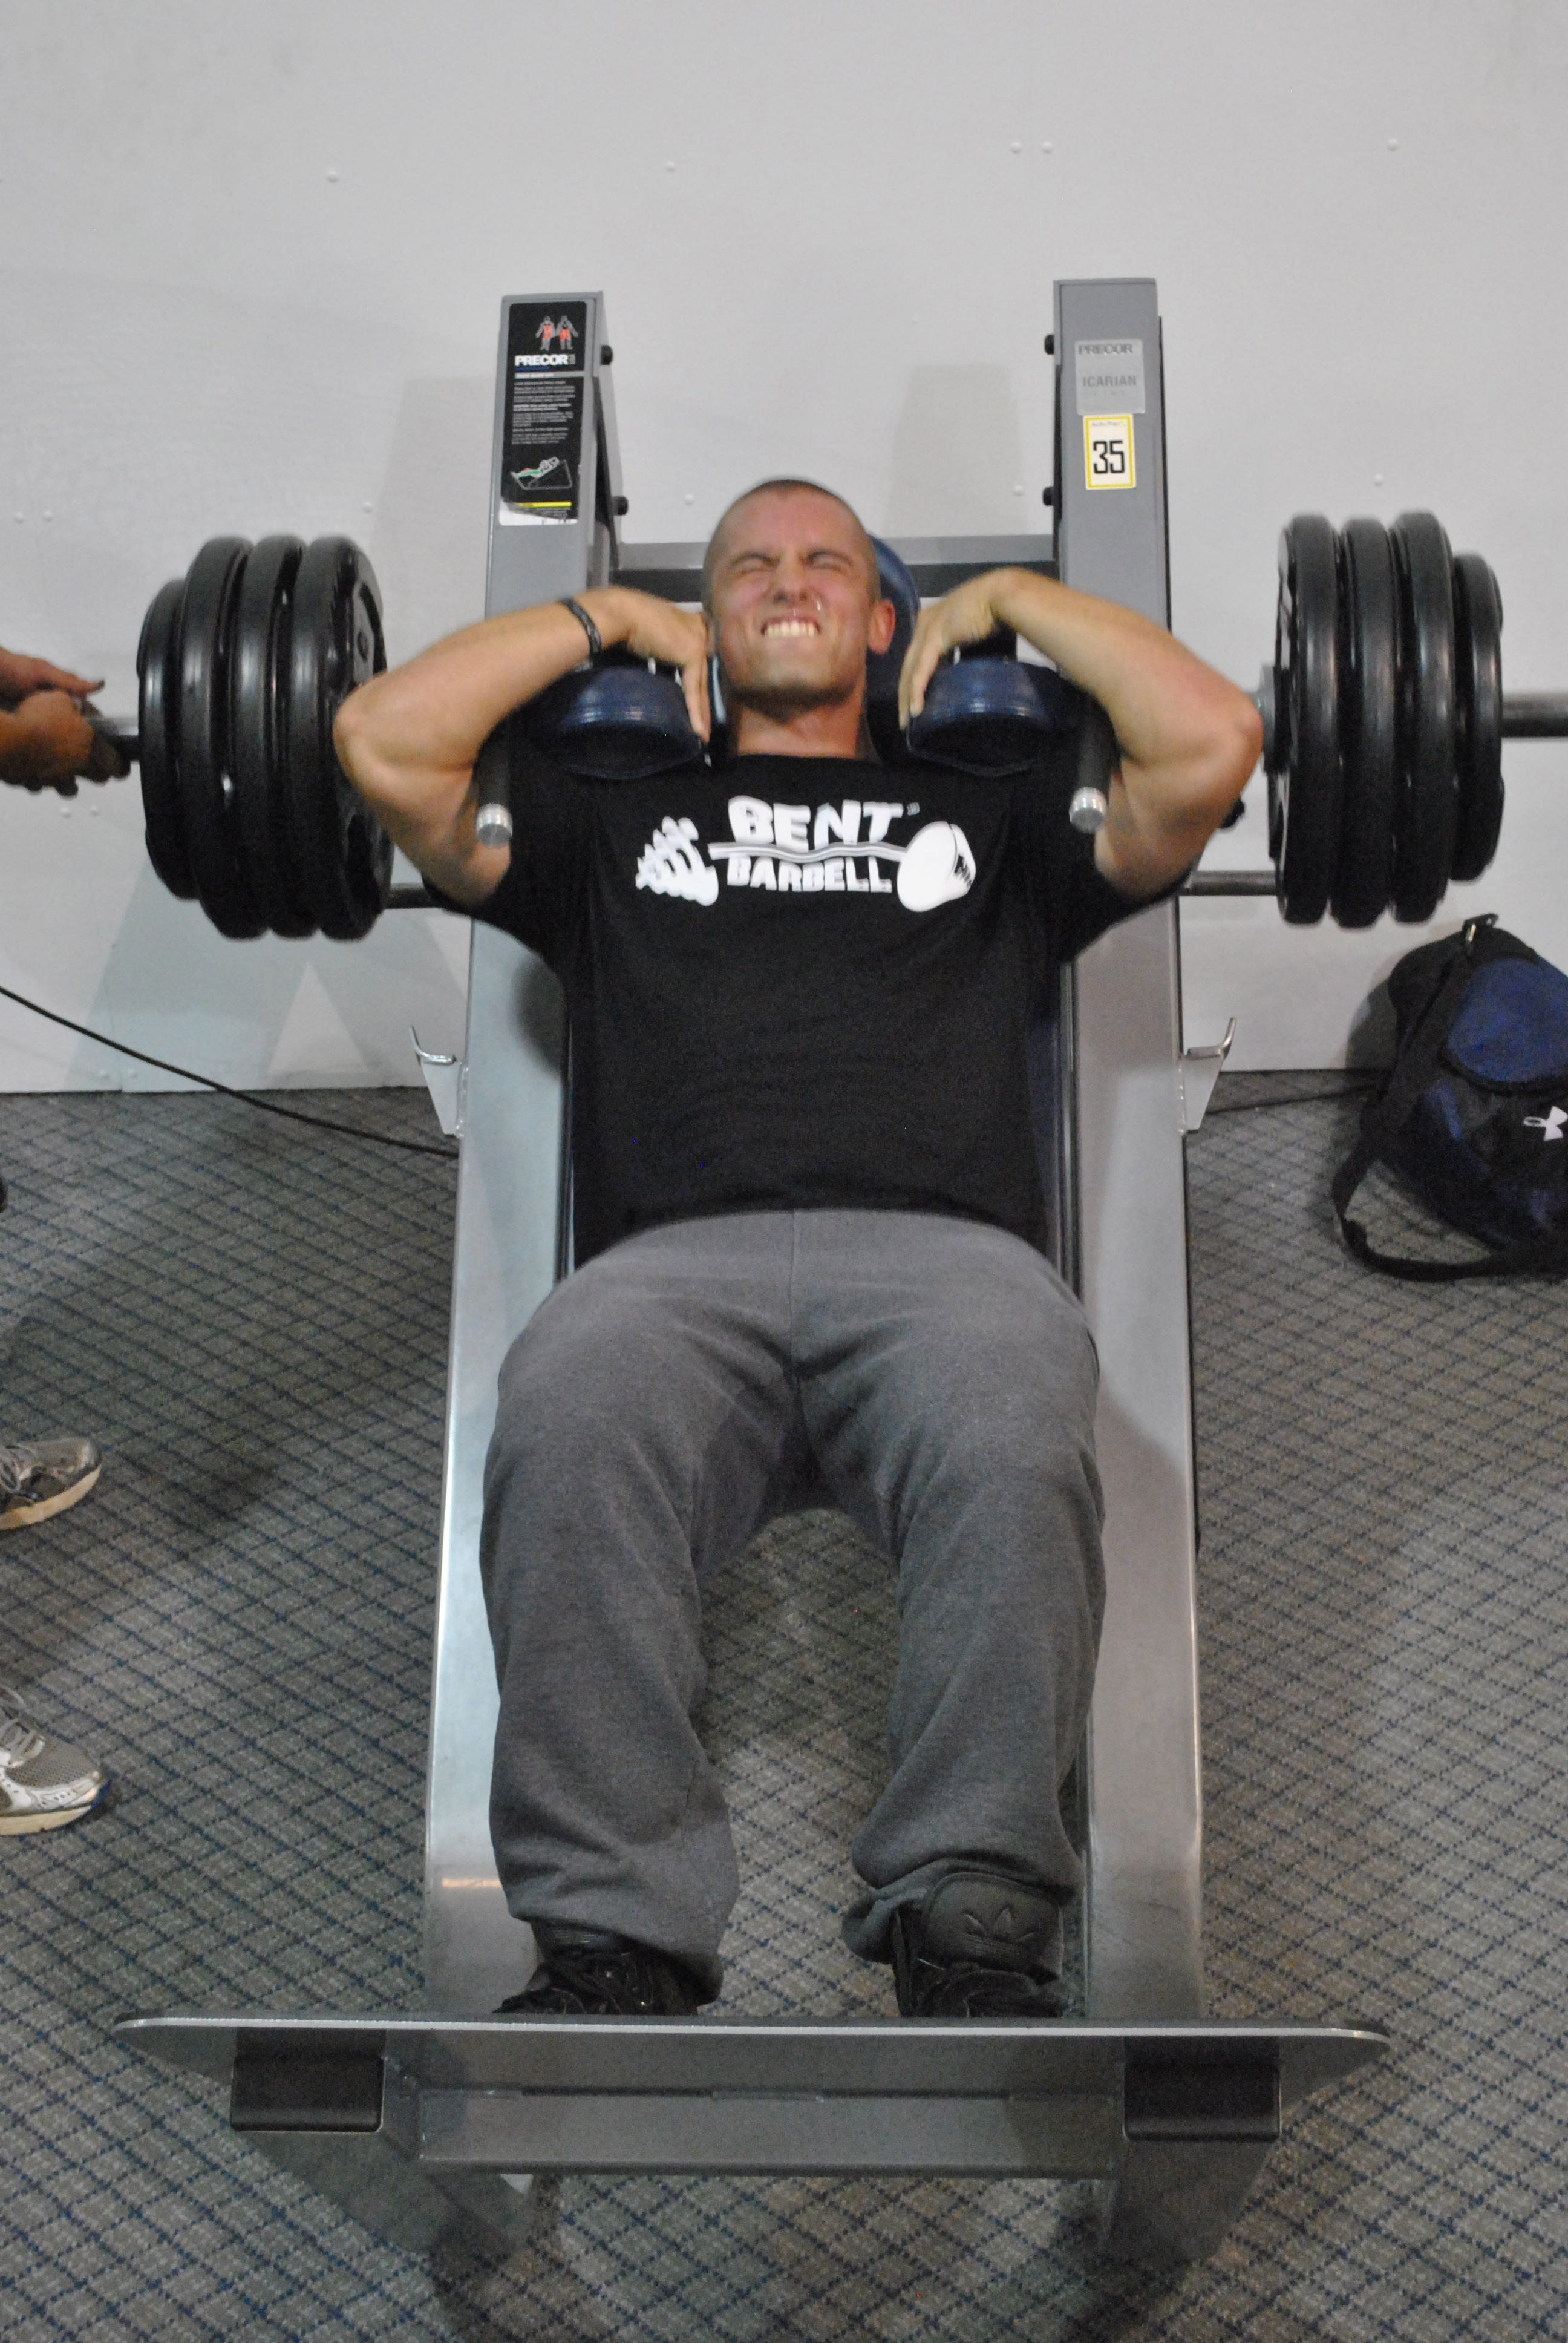 Bentbarbell nation s alex trains legs at bentbarbell s home gym